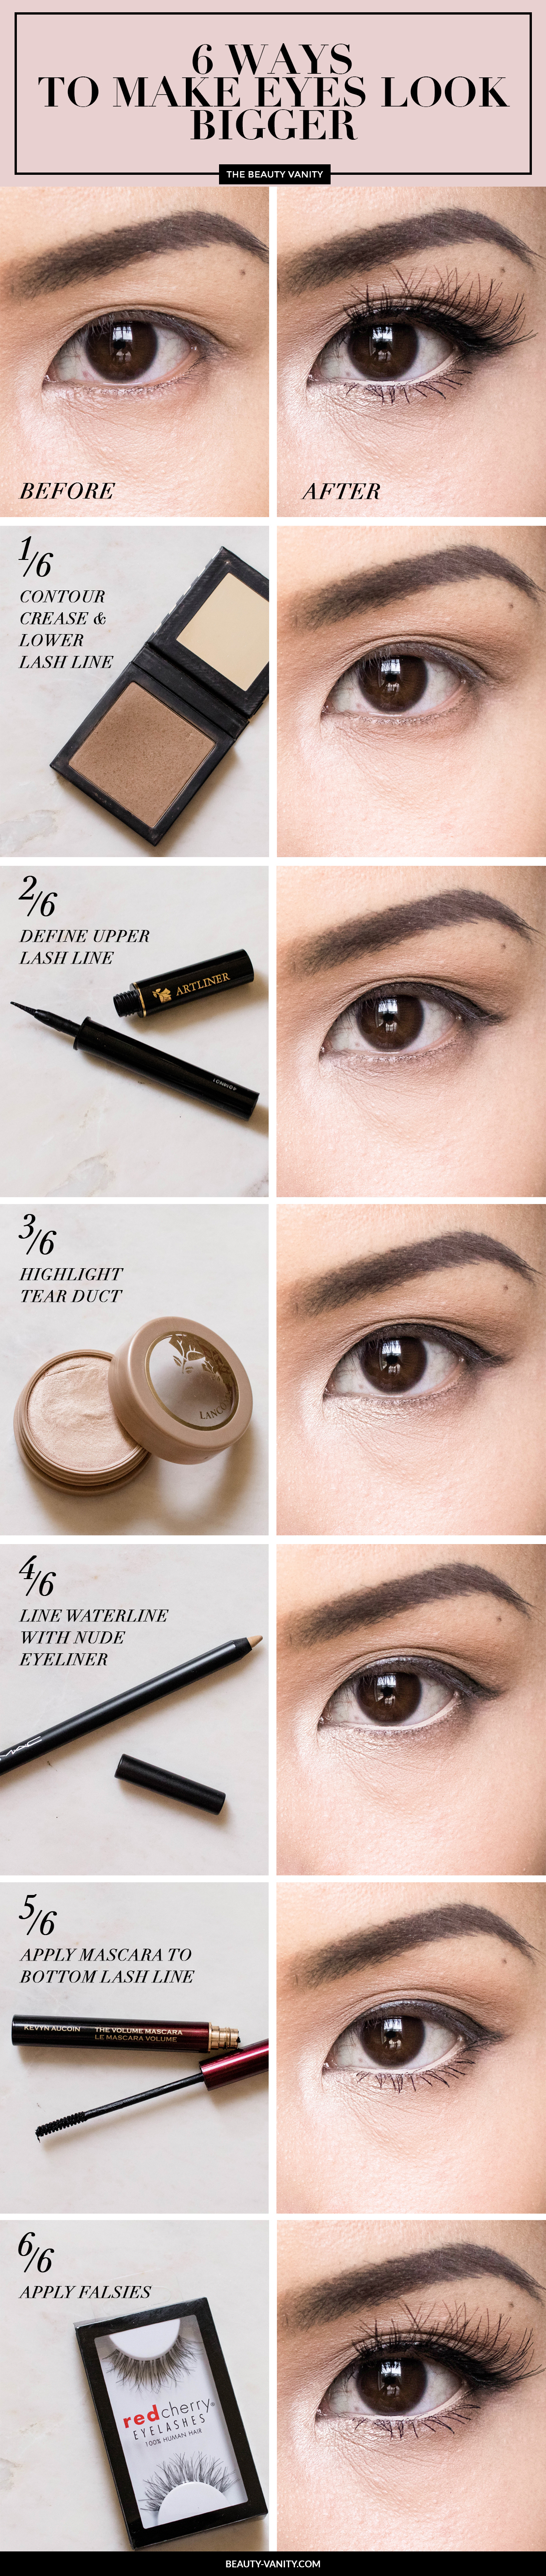 Eye makeup to make eyes look bigger